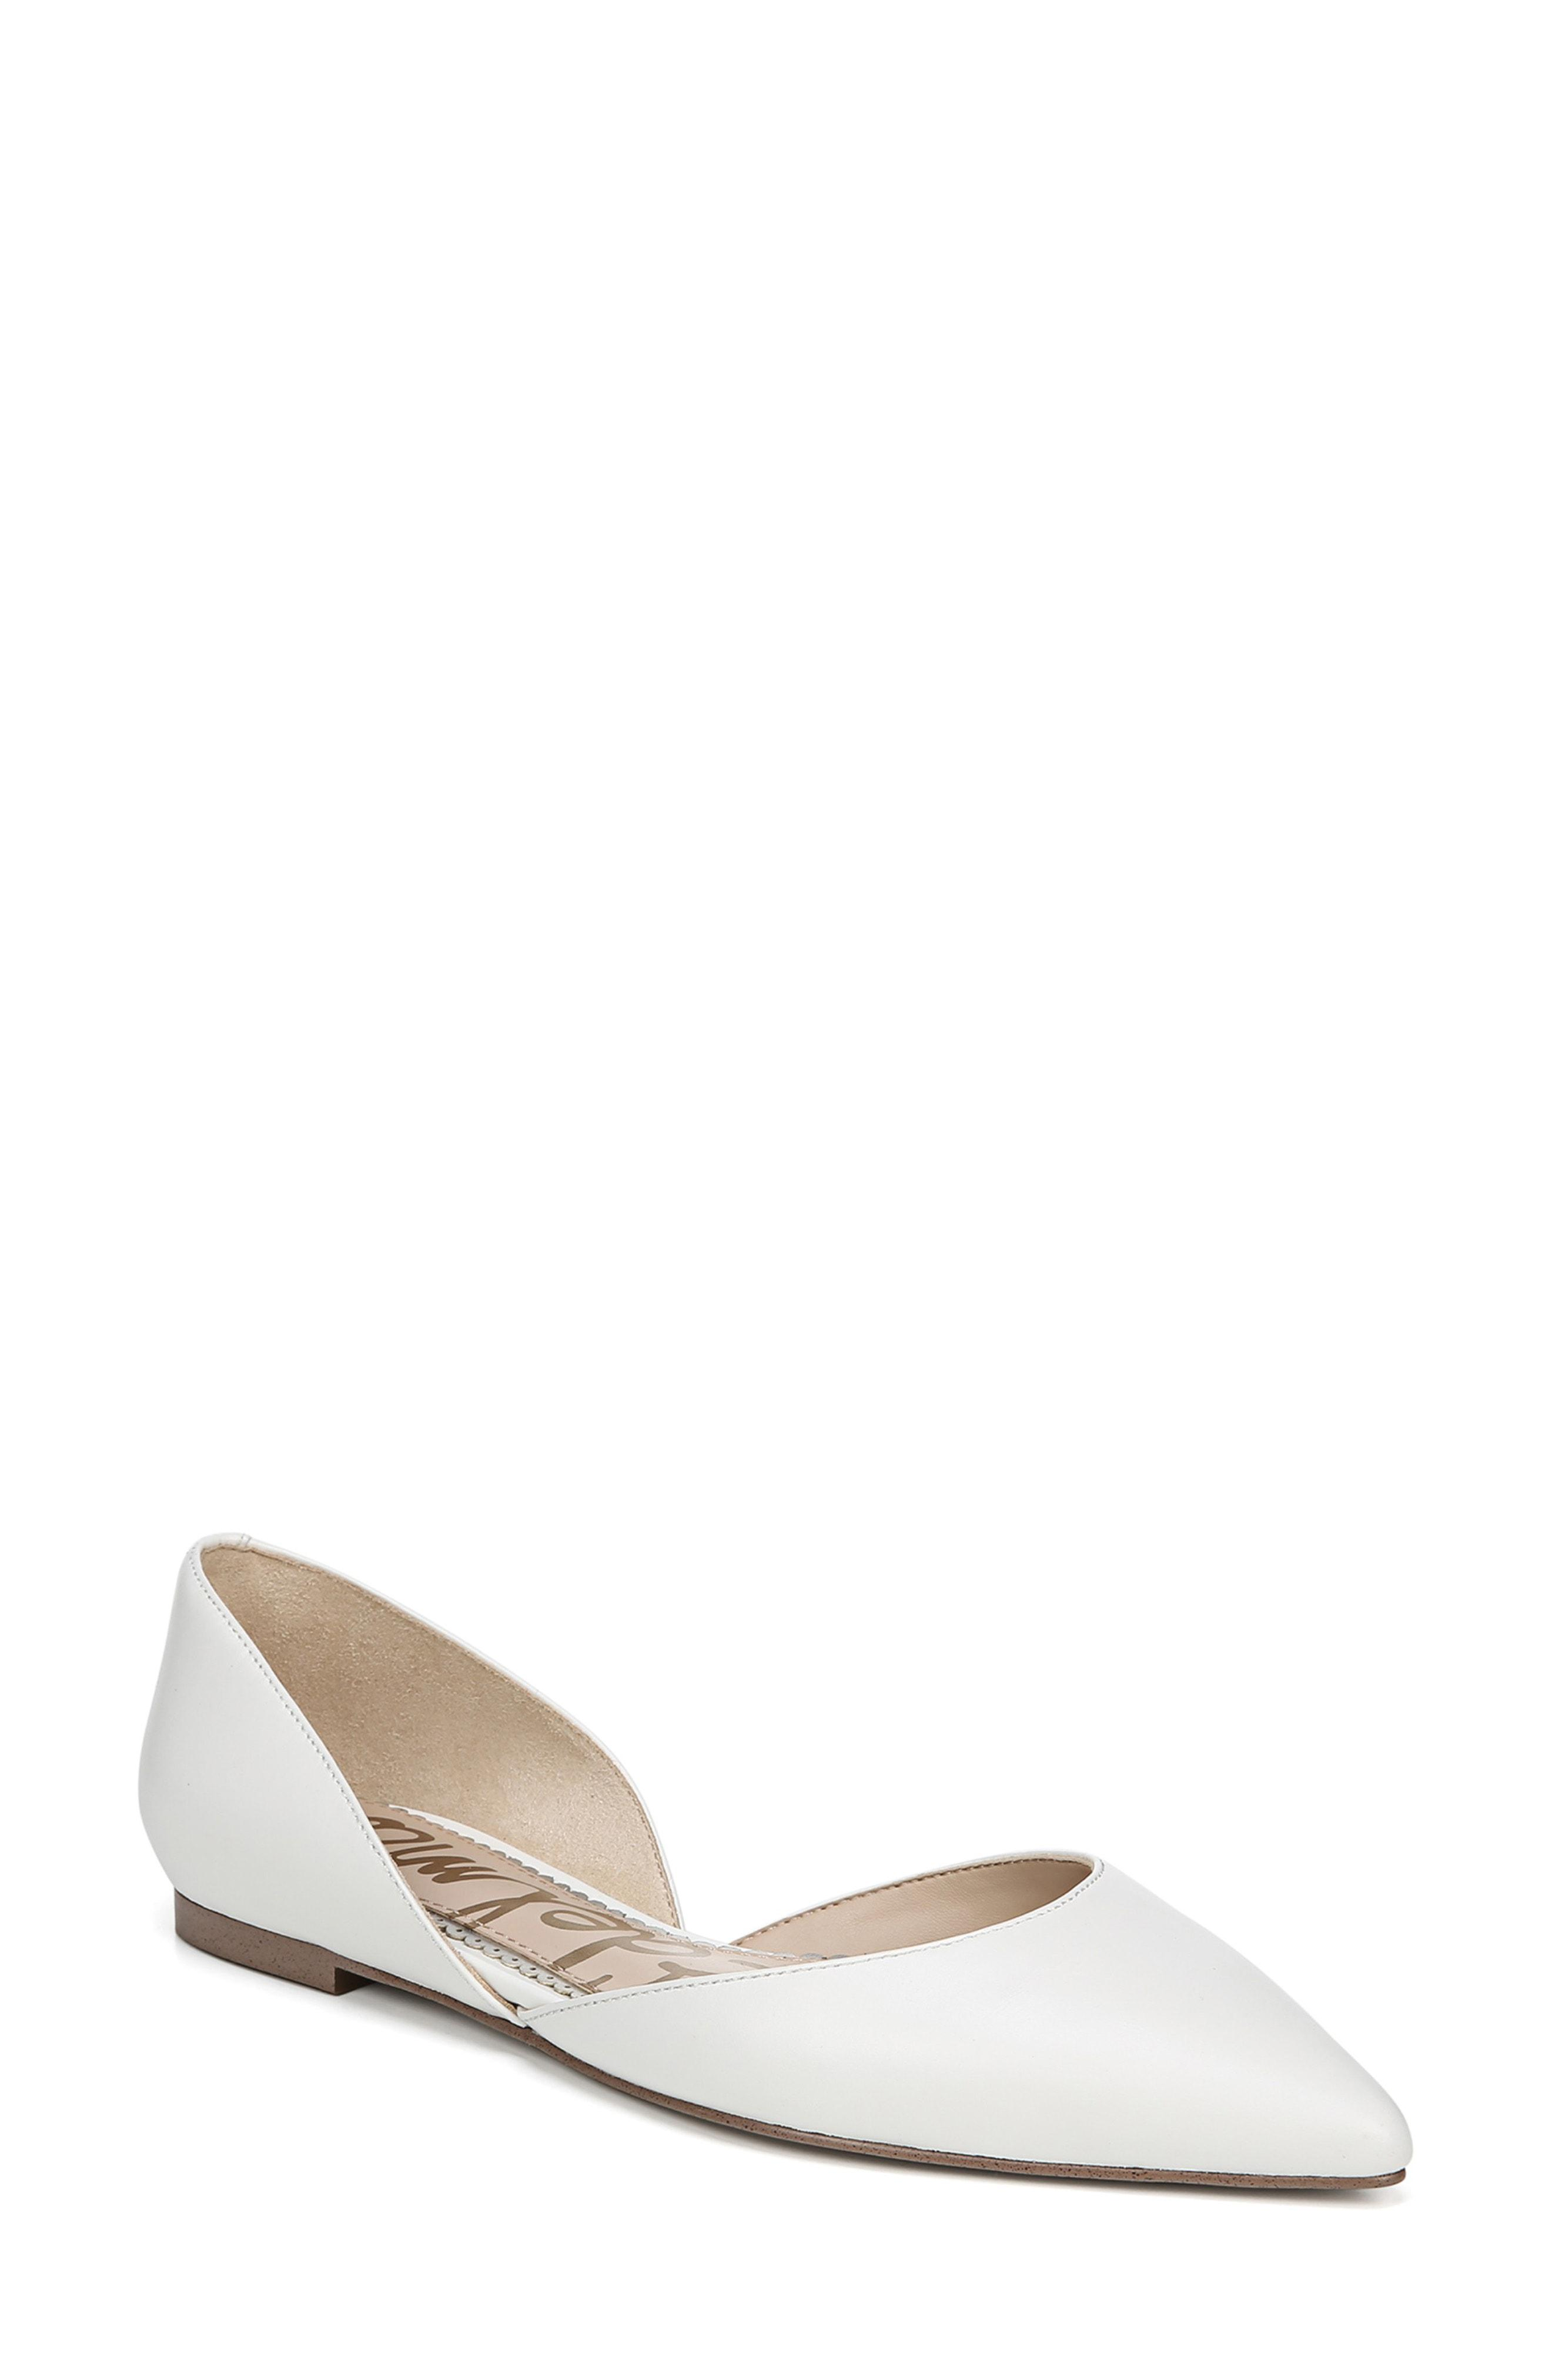 990cbc26d154f Lyst - Sam Edelman Rodney Pointy Toe D orsay Flat in White